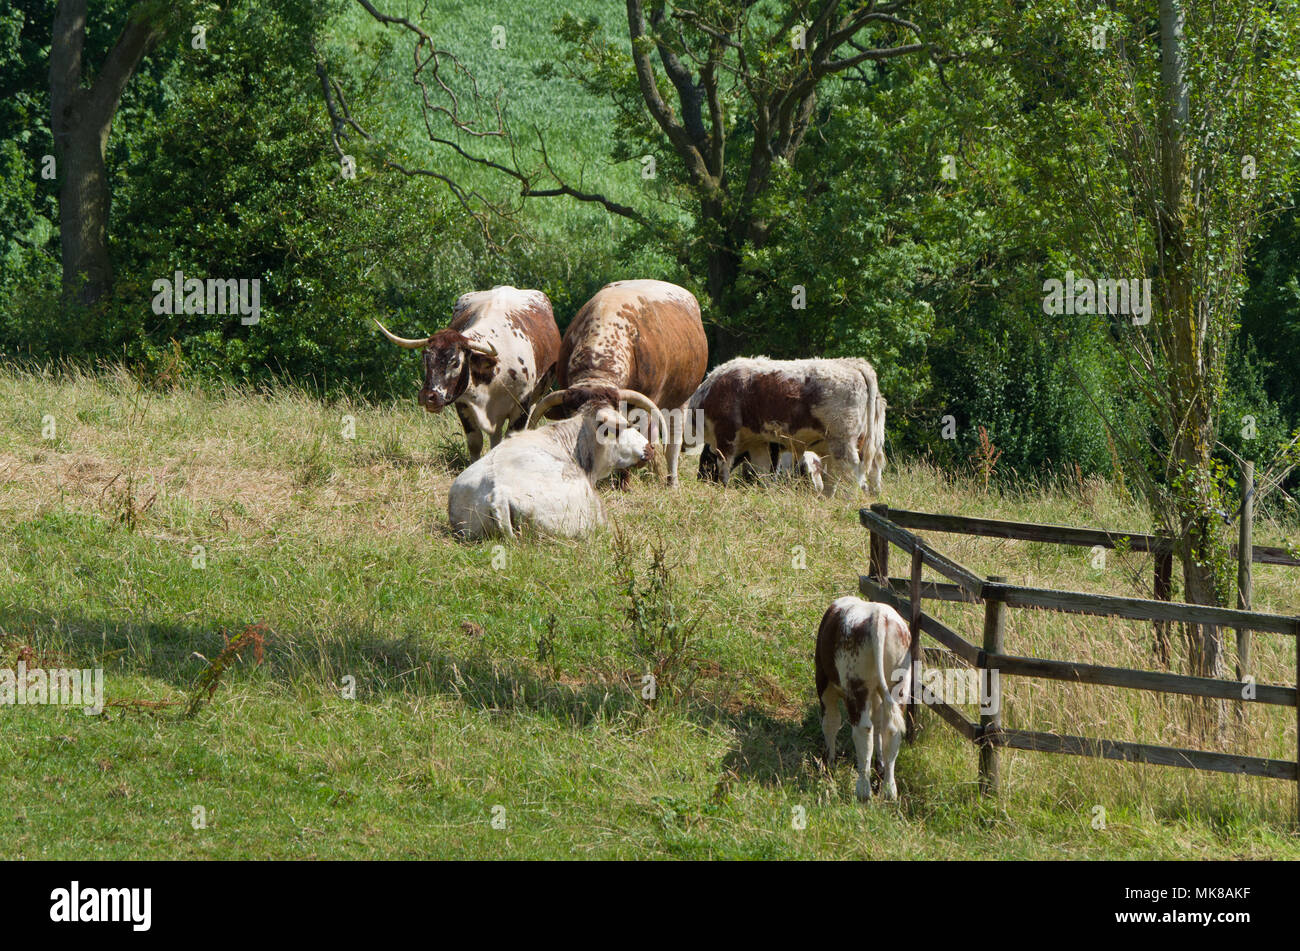 english longhorn cattle stock photos english longhorn cattle stock images alamy. Black Bedroom Furniture Sets. Home Design Ideas